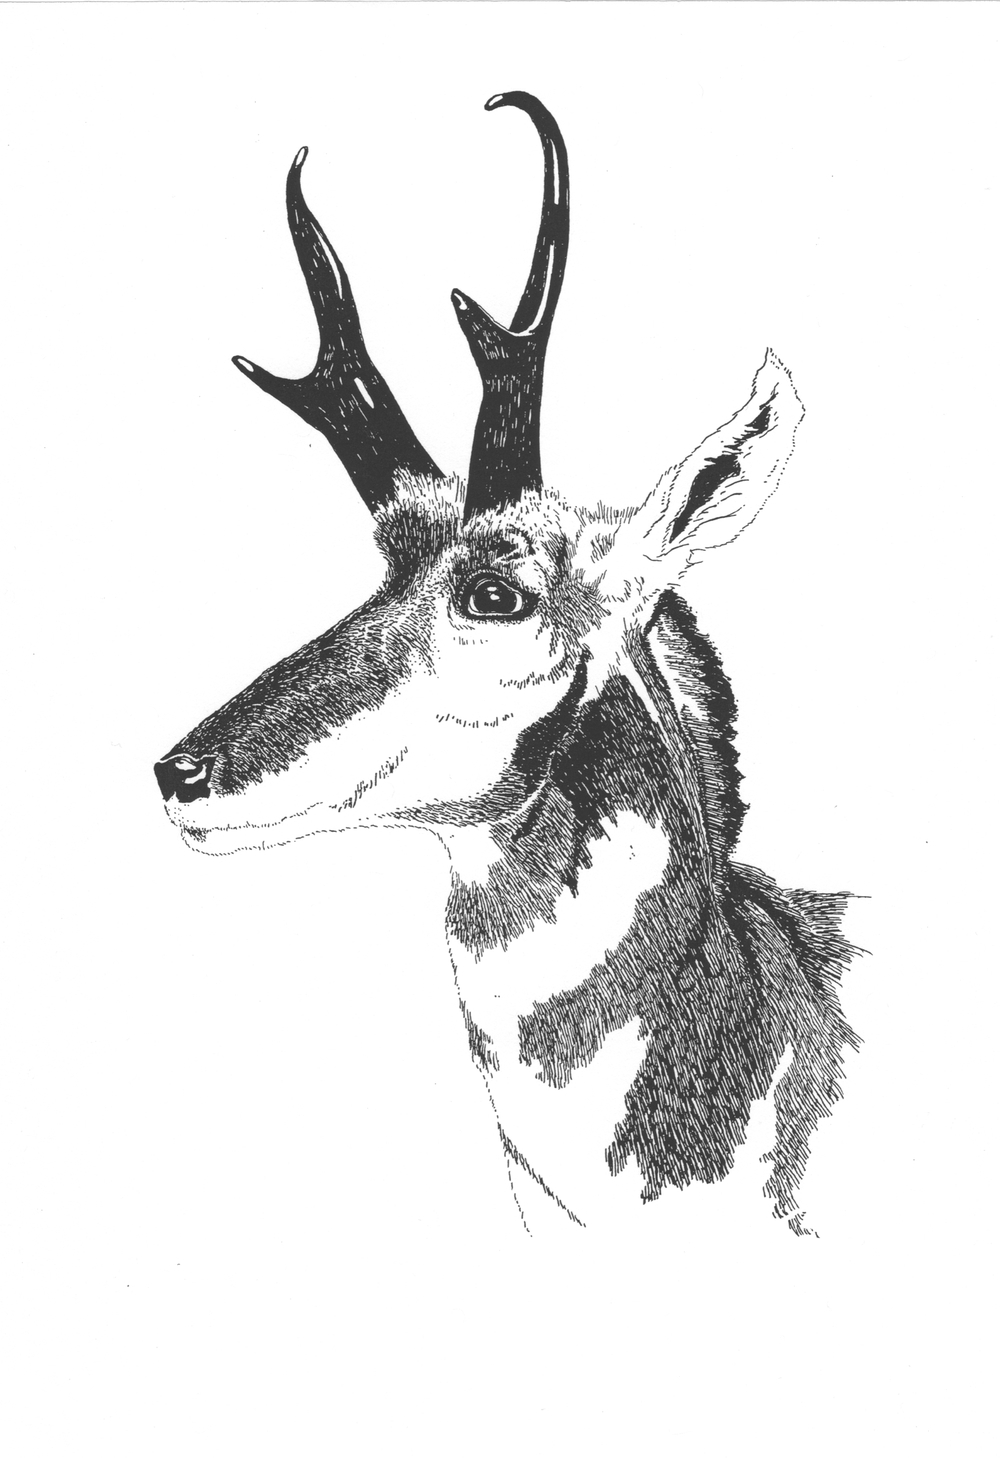 Pronghorn • © Fred Montague  $50 • Letterpress Print • image 6.5 x 9.5 • matted 16 x 20  Edition size: 880 • status: available